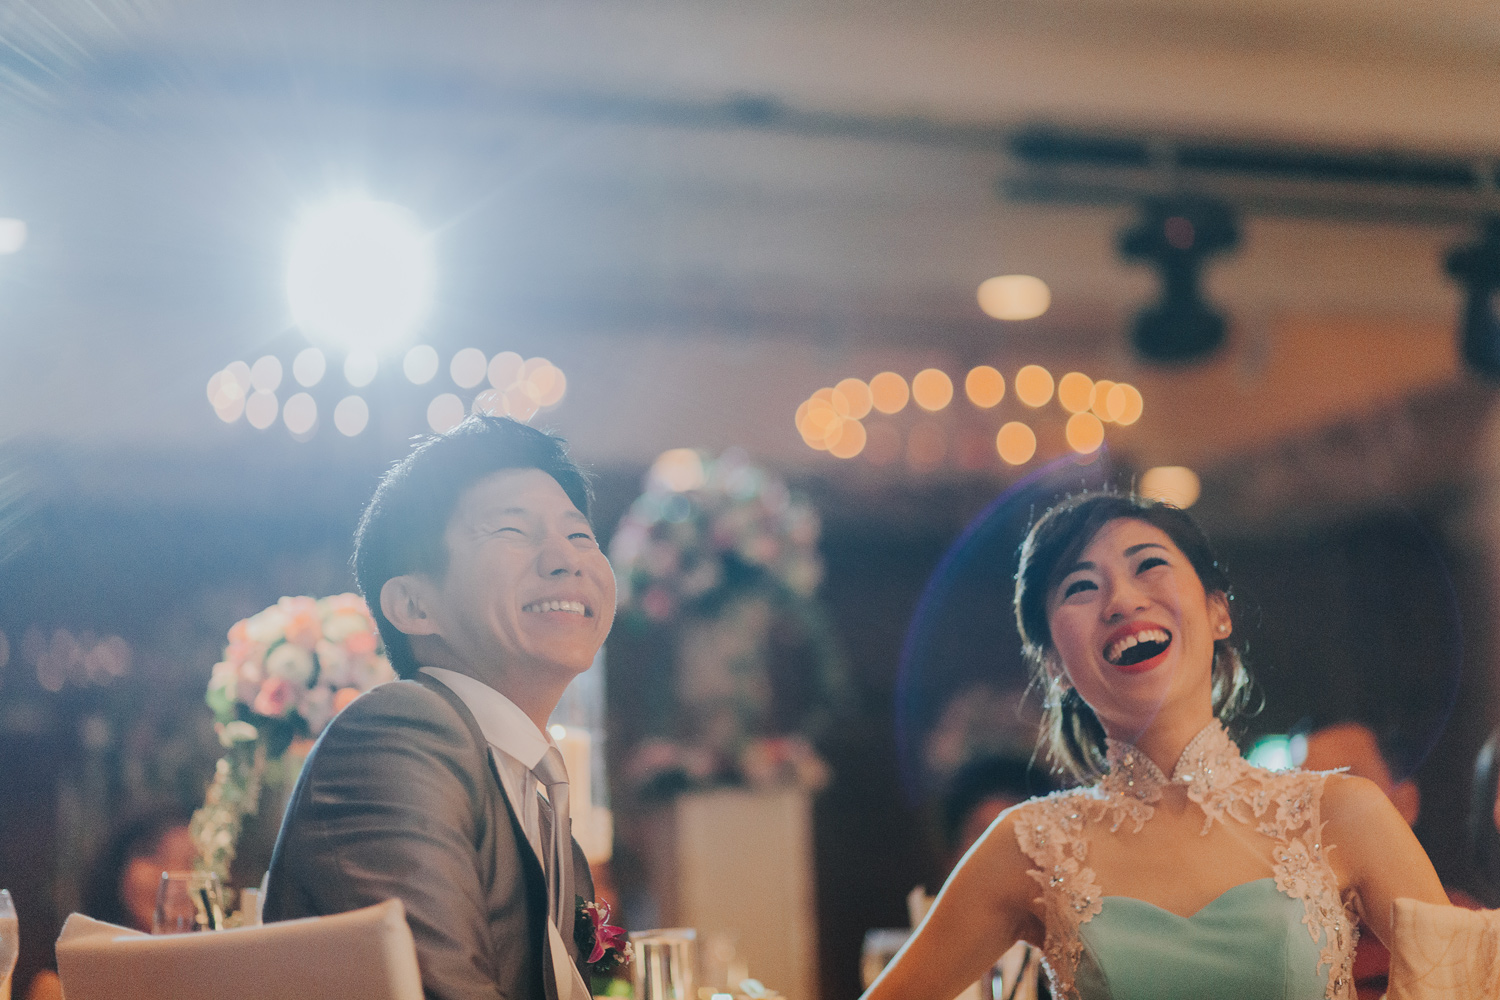 bittersweet photography Singapore wedding photographer jonathan 106